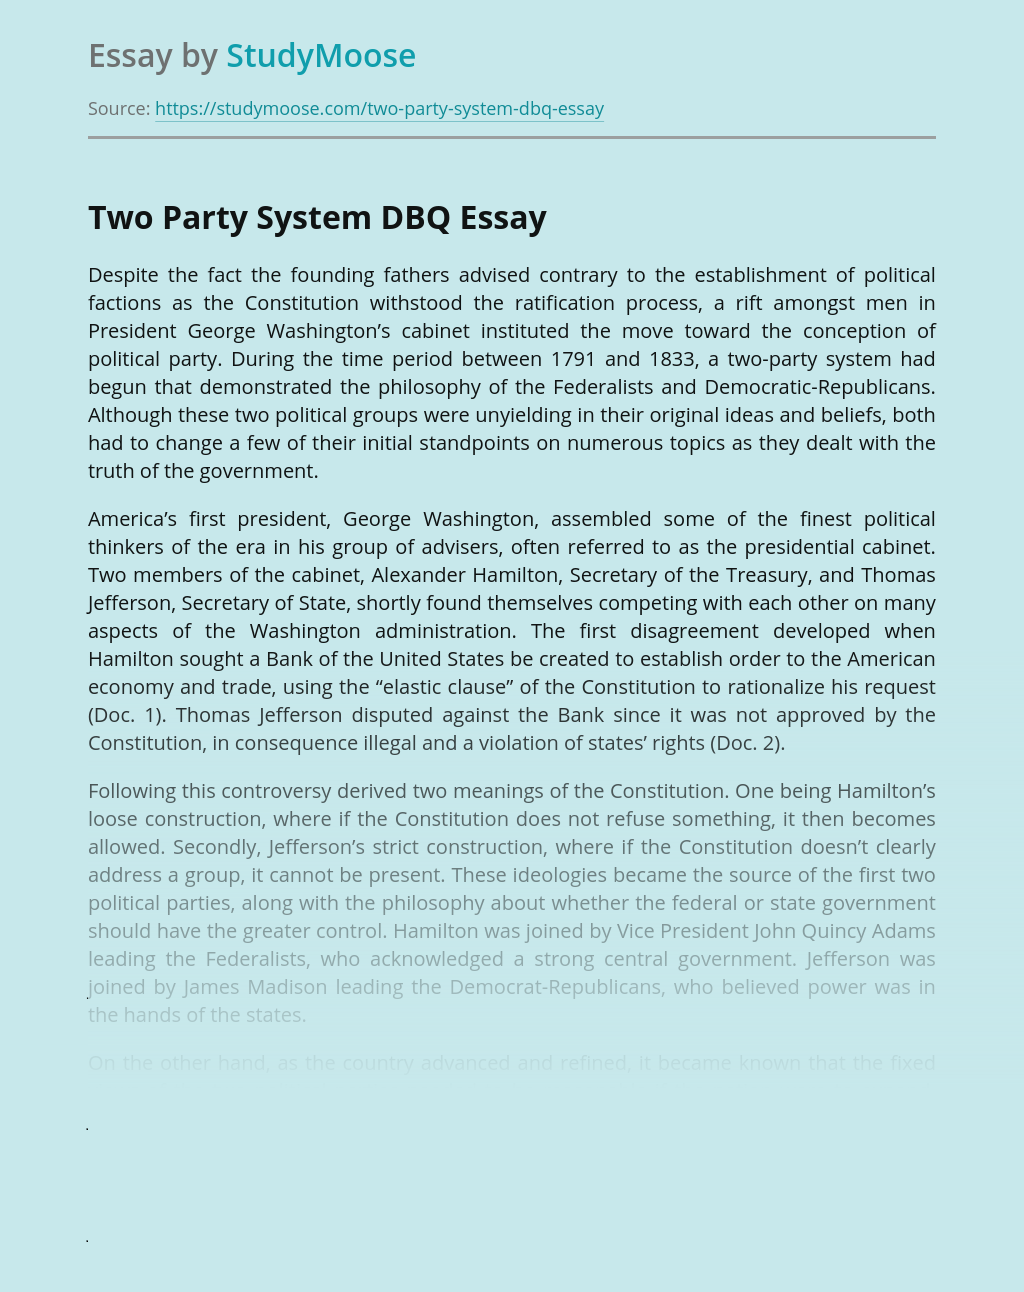 Two Party System DBQ